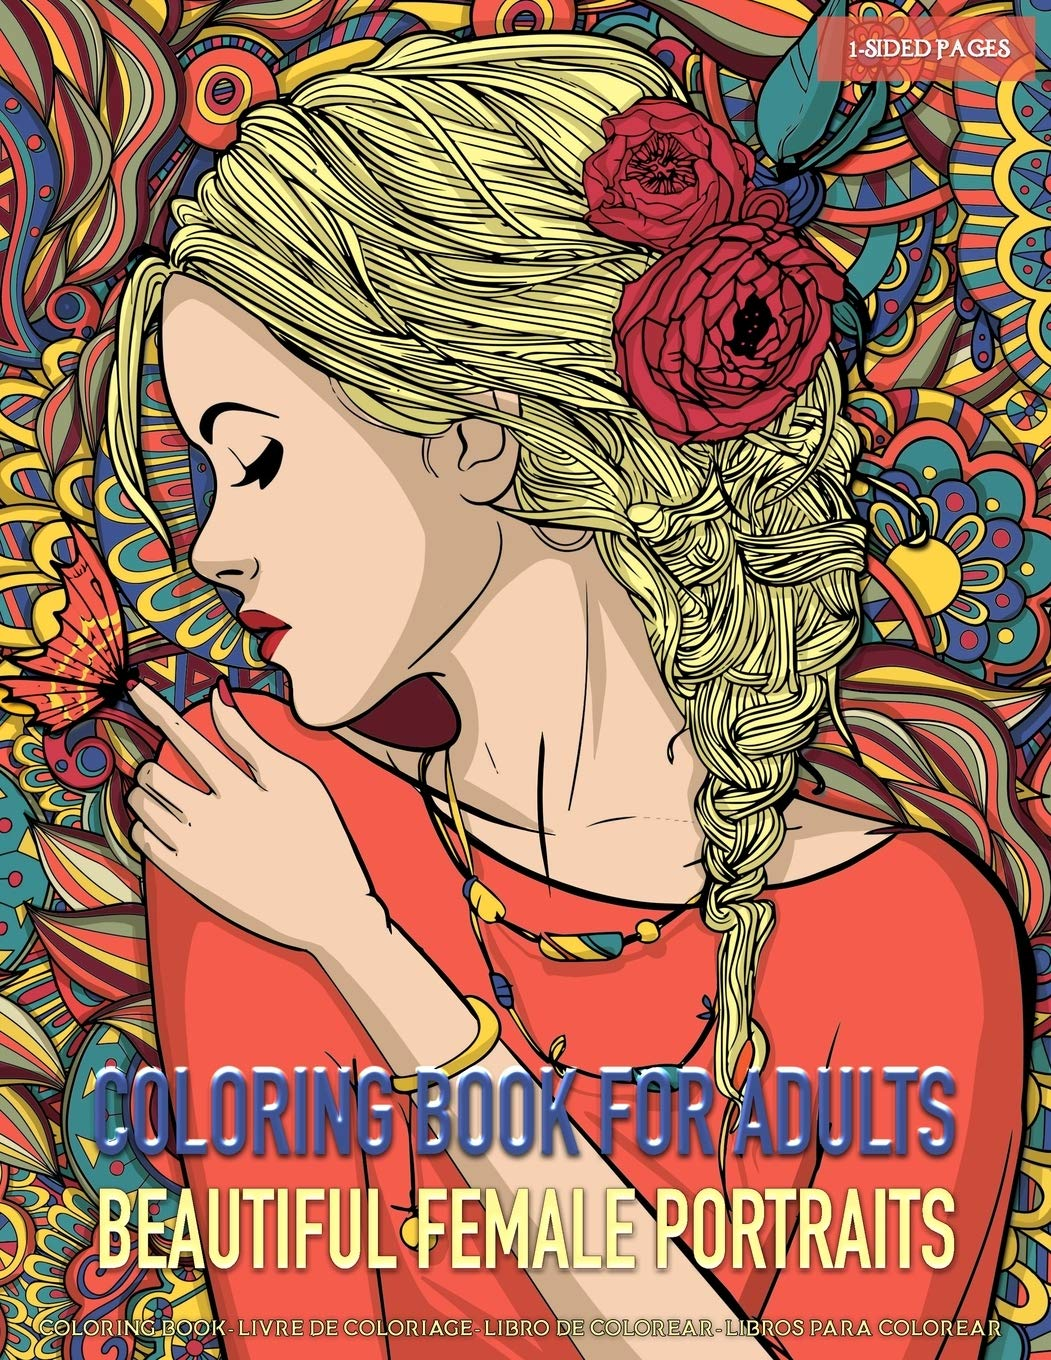 Amazon Com Coloring Book For Adults Beautiful Female Portraits Coloring Pages For Grown Ups Featuring Beautiful Collection Of Women Portraits For Stress Relief Relaxation Boost Creativity And Happiness 9781690131601 Coloring Dhiya Books